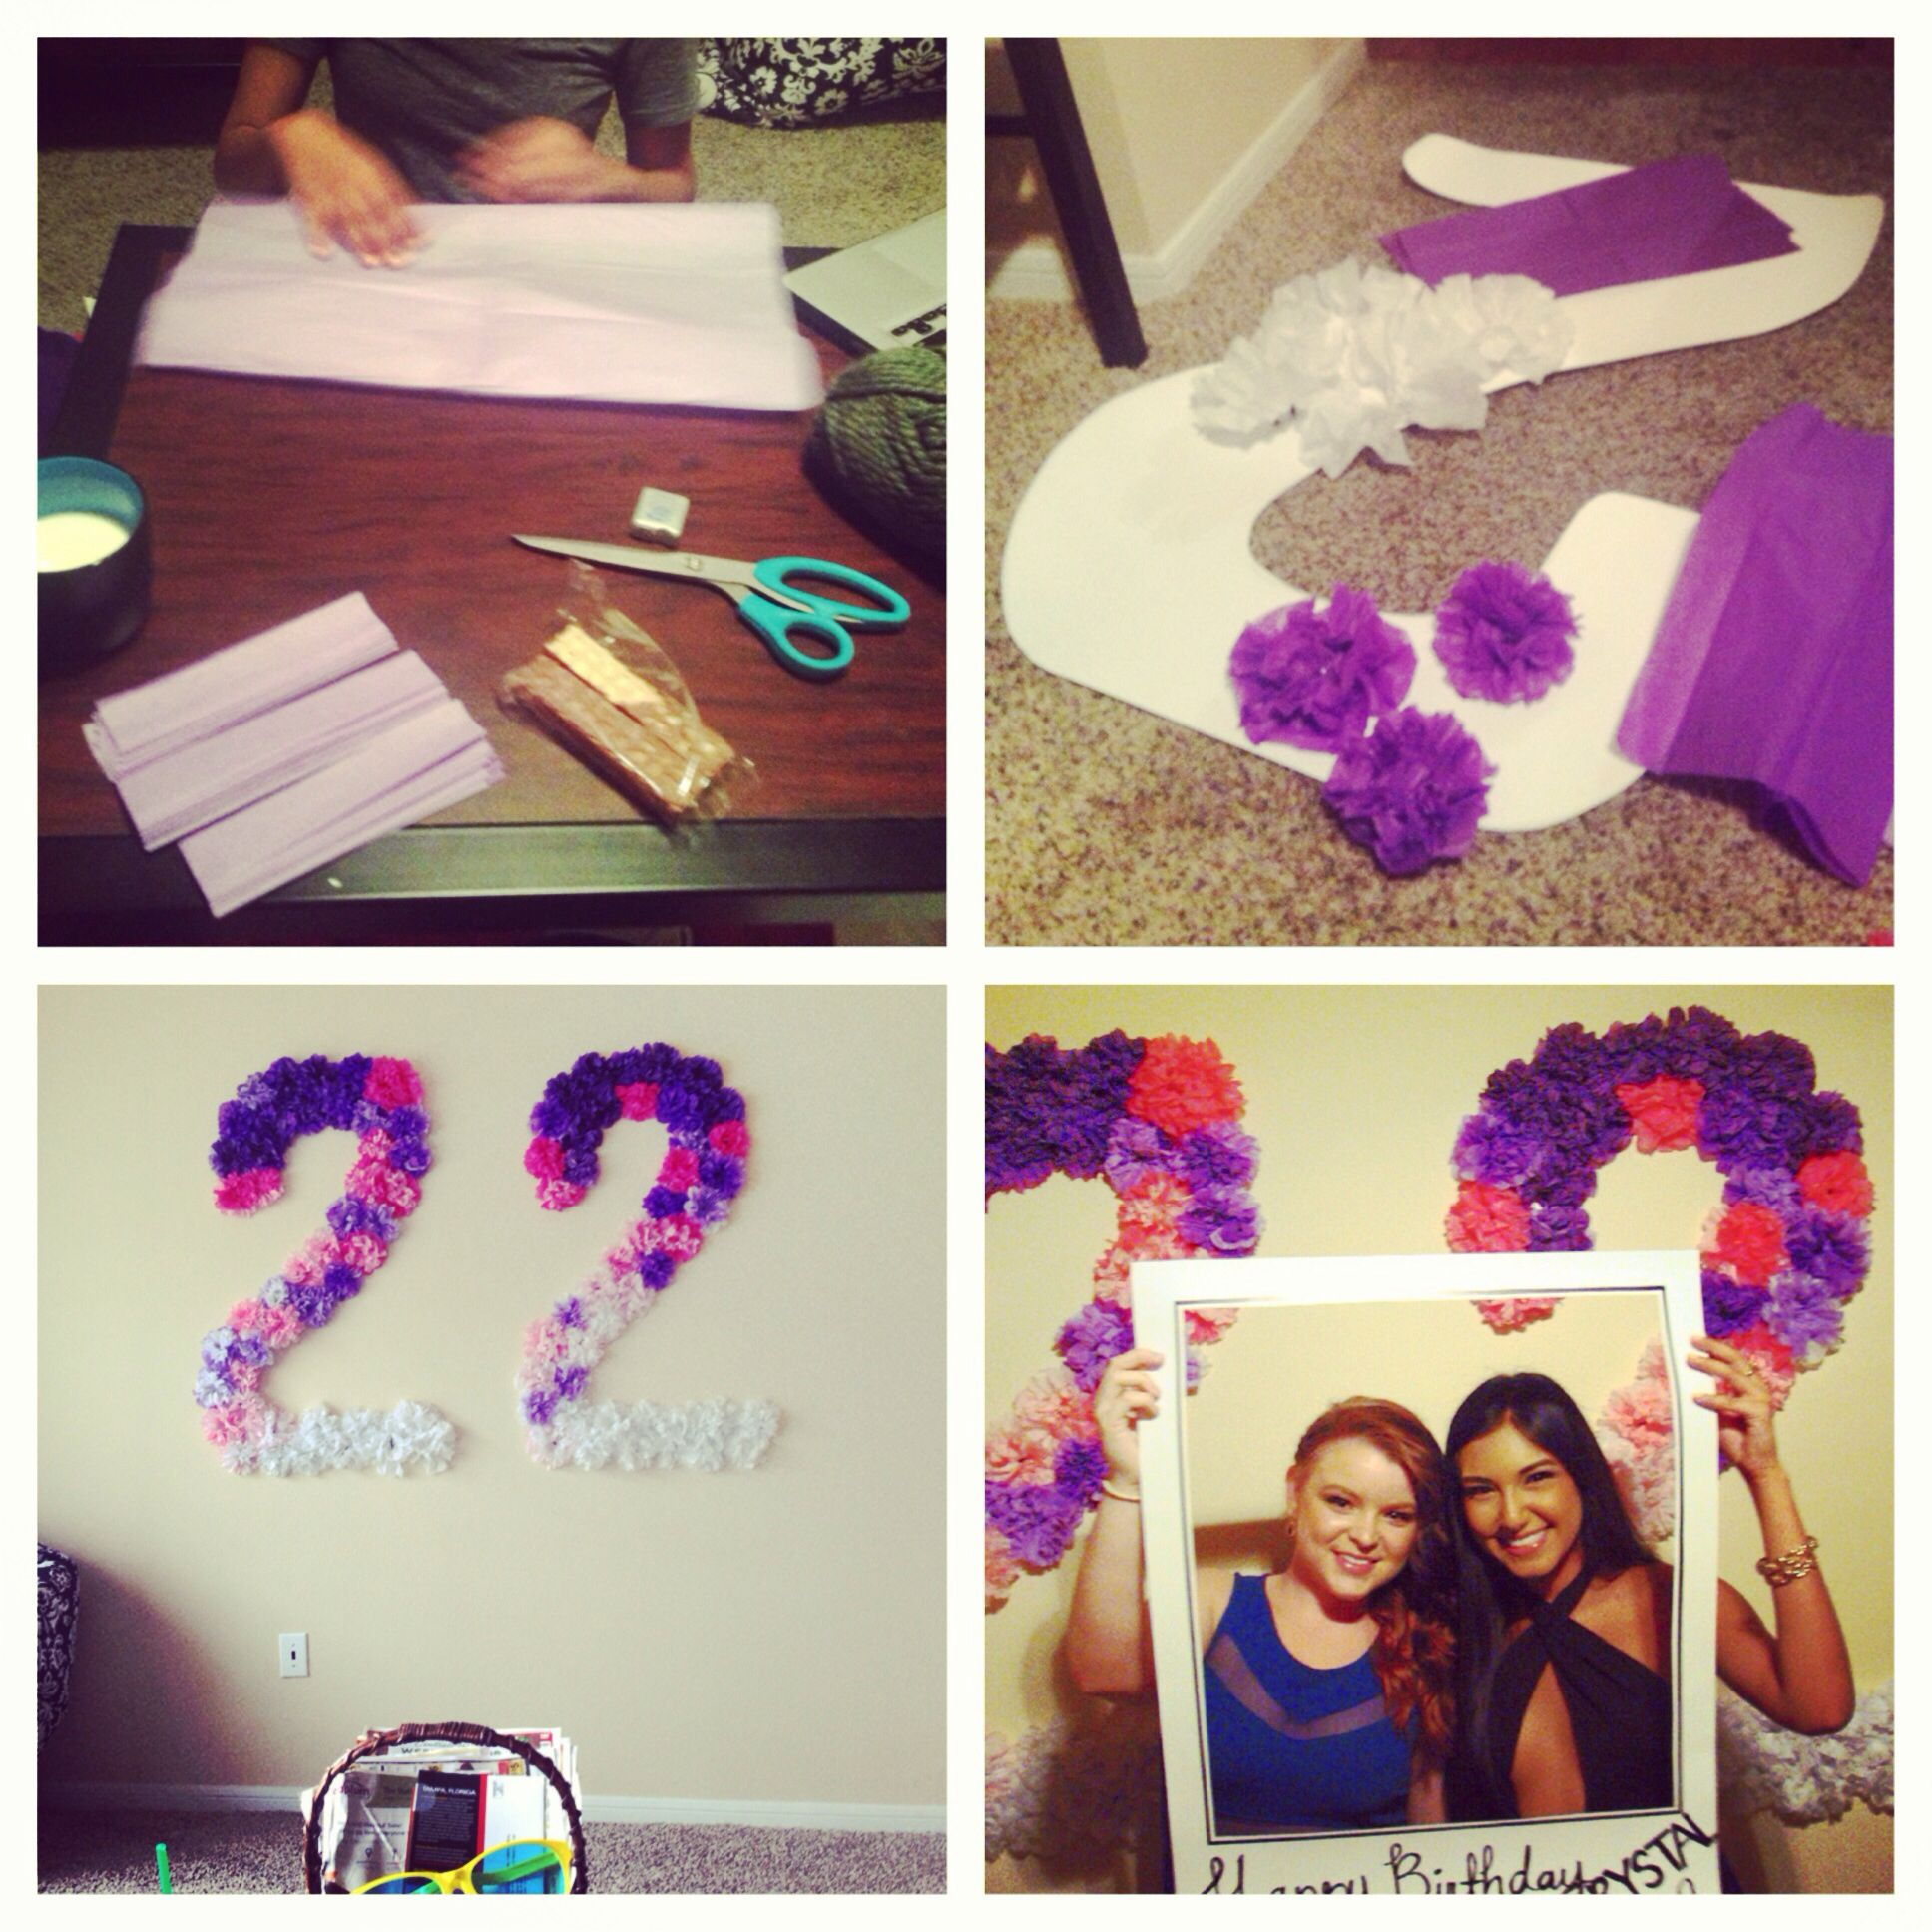 A Big Ombré 22 Decoration For My Friends 22nd Birthday Out